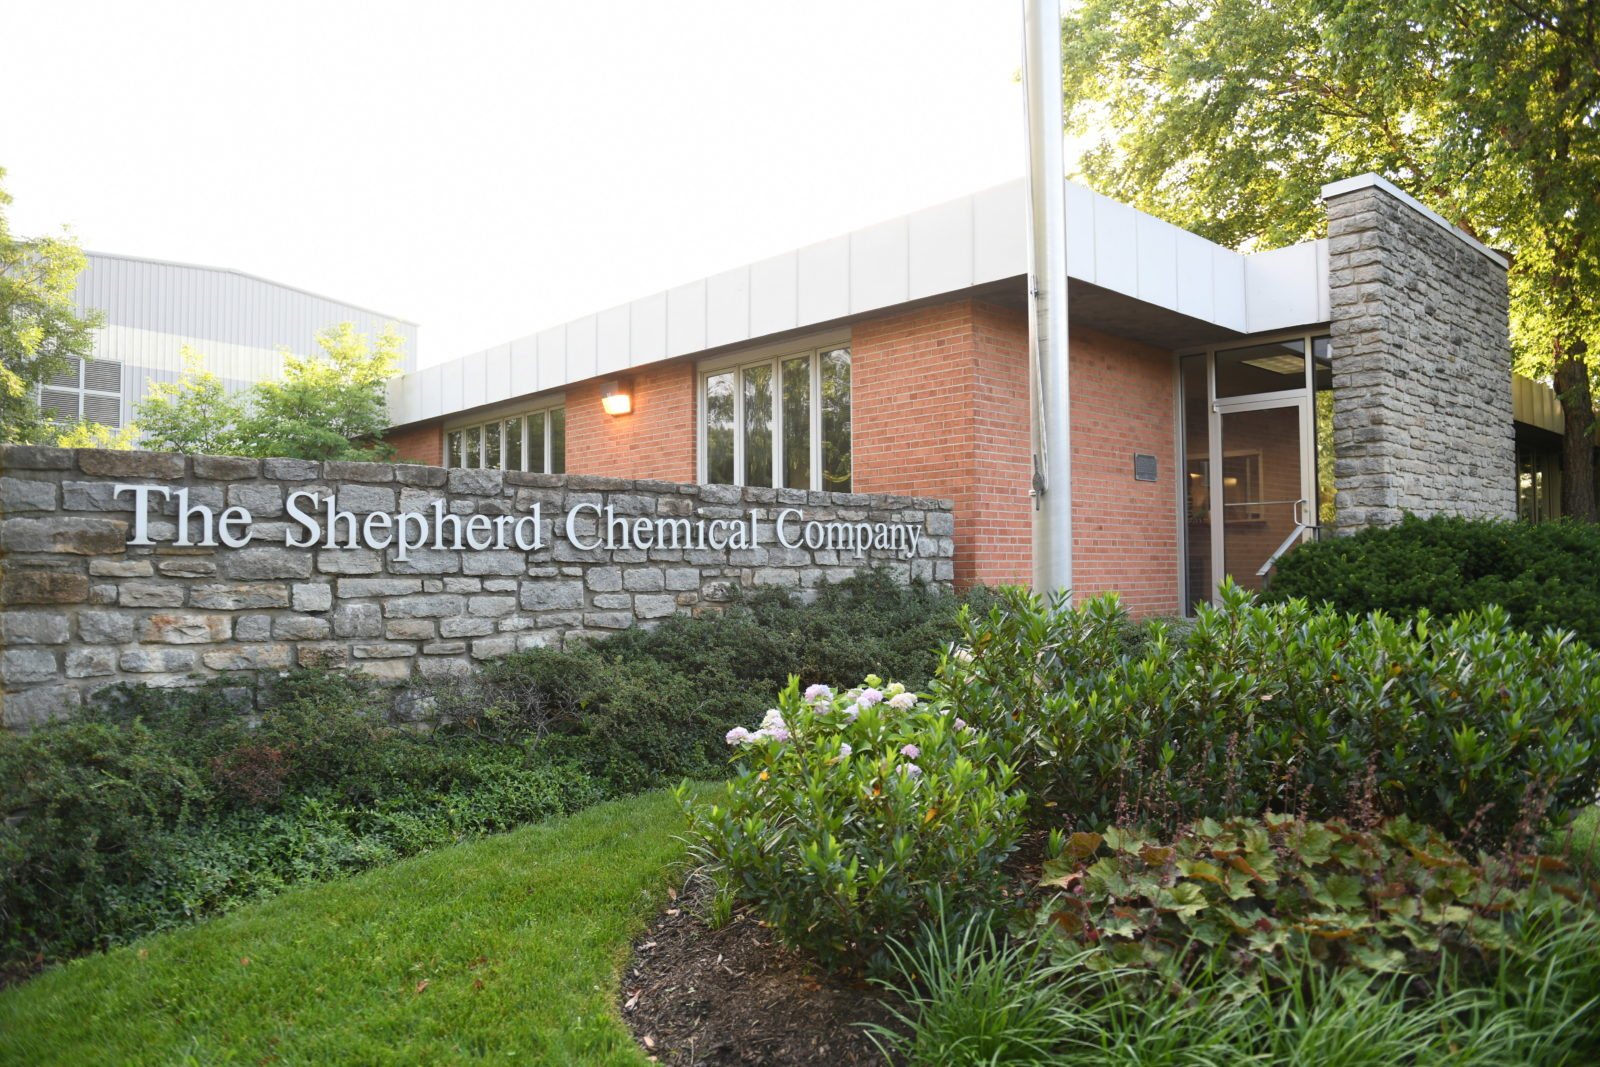 UC Students Visit the Shepherd Chemical Company